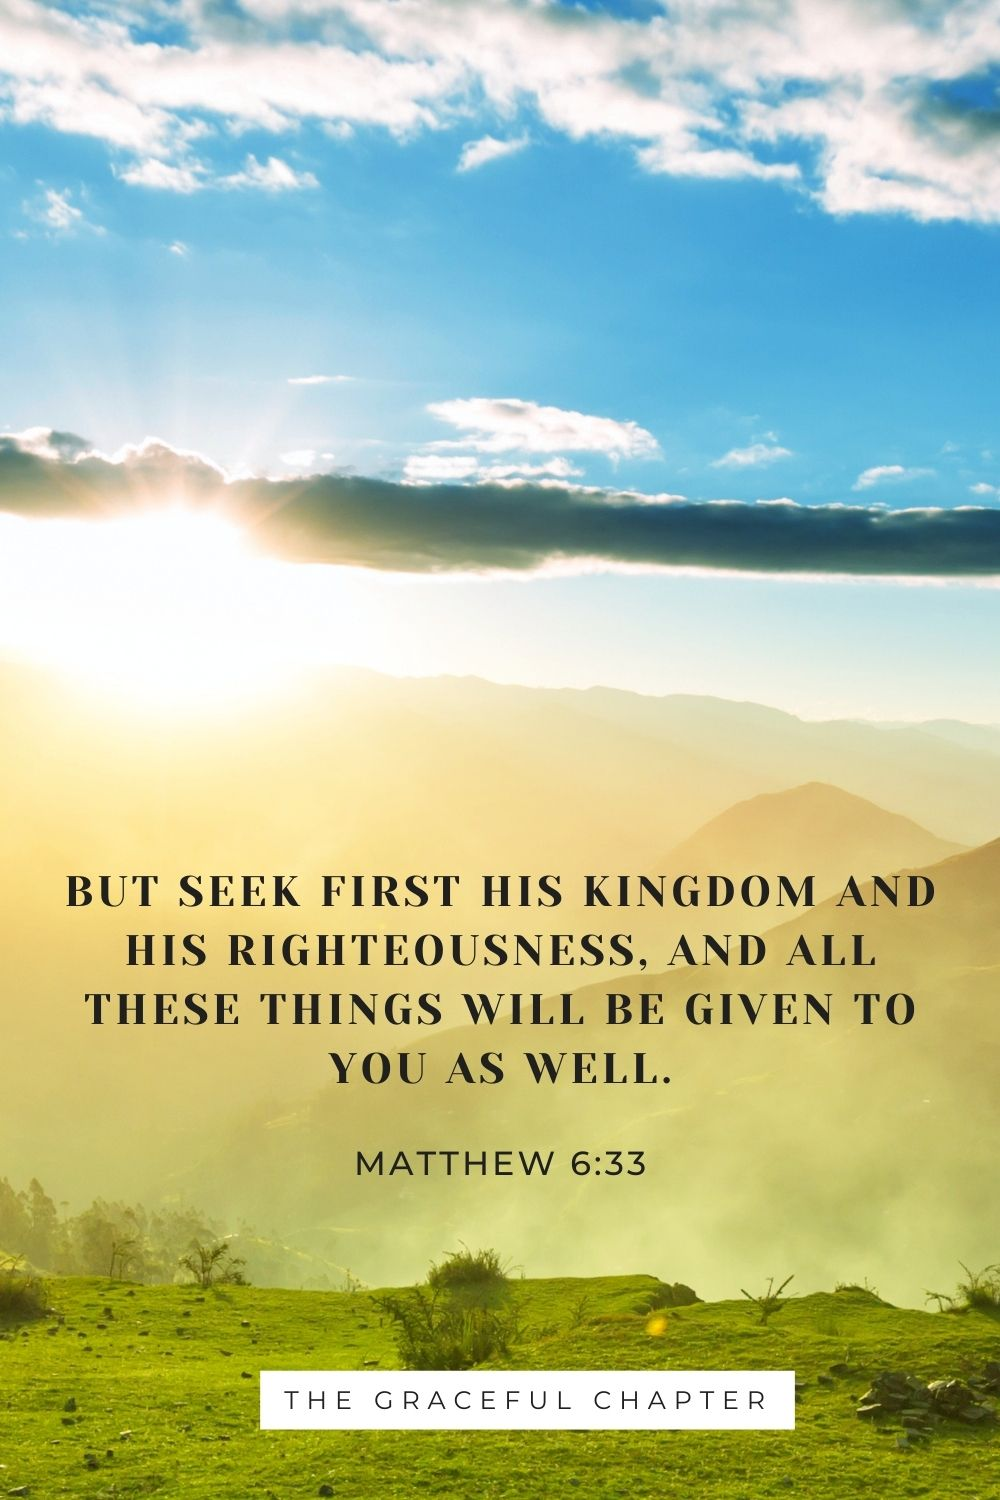 But seek first his kingdom and his righteousness, and all these things will be given to you as well. Matthew 6:33